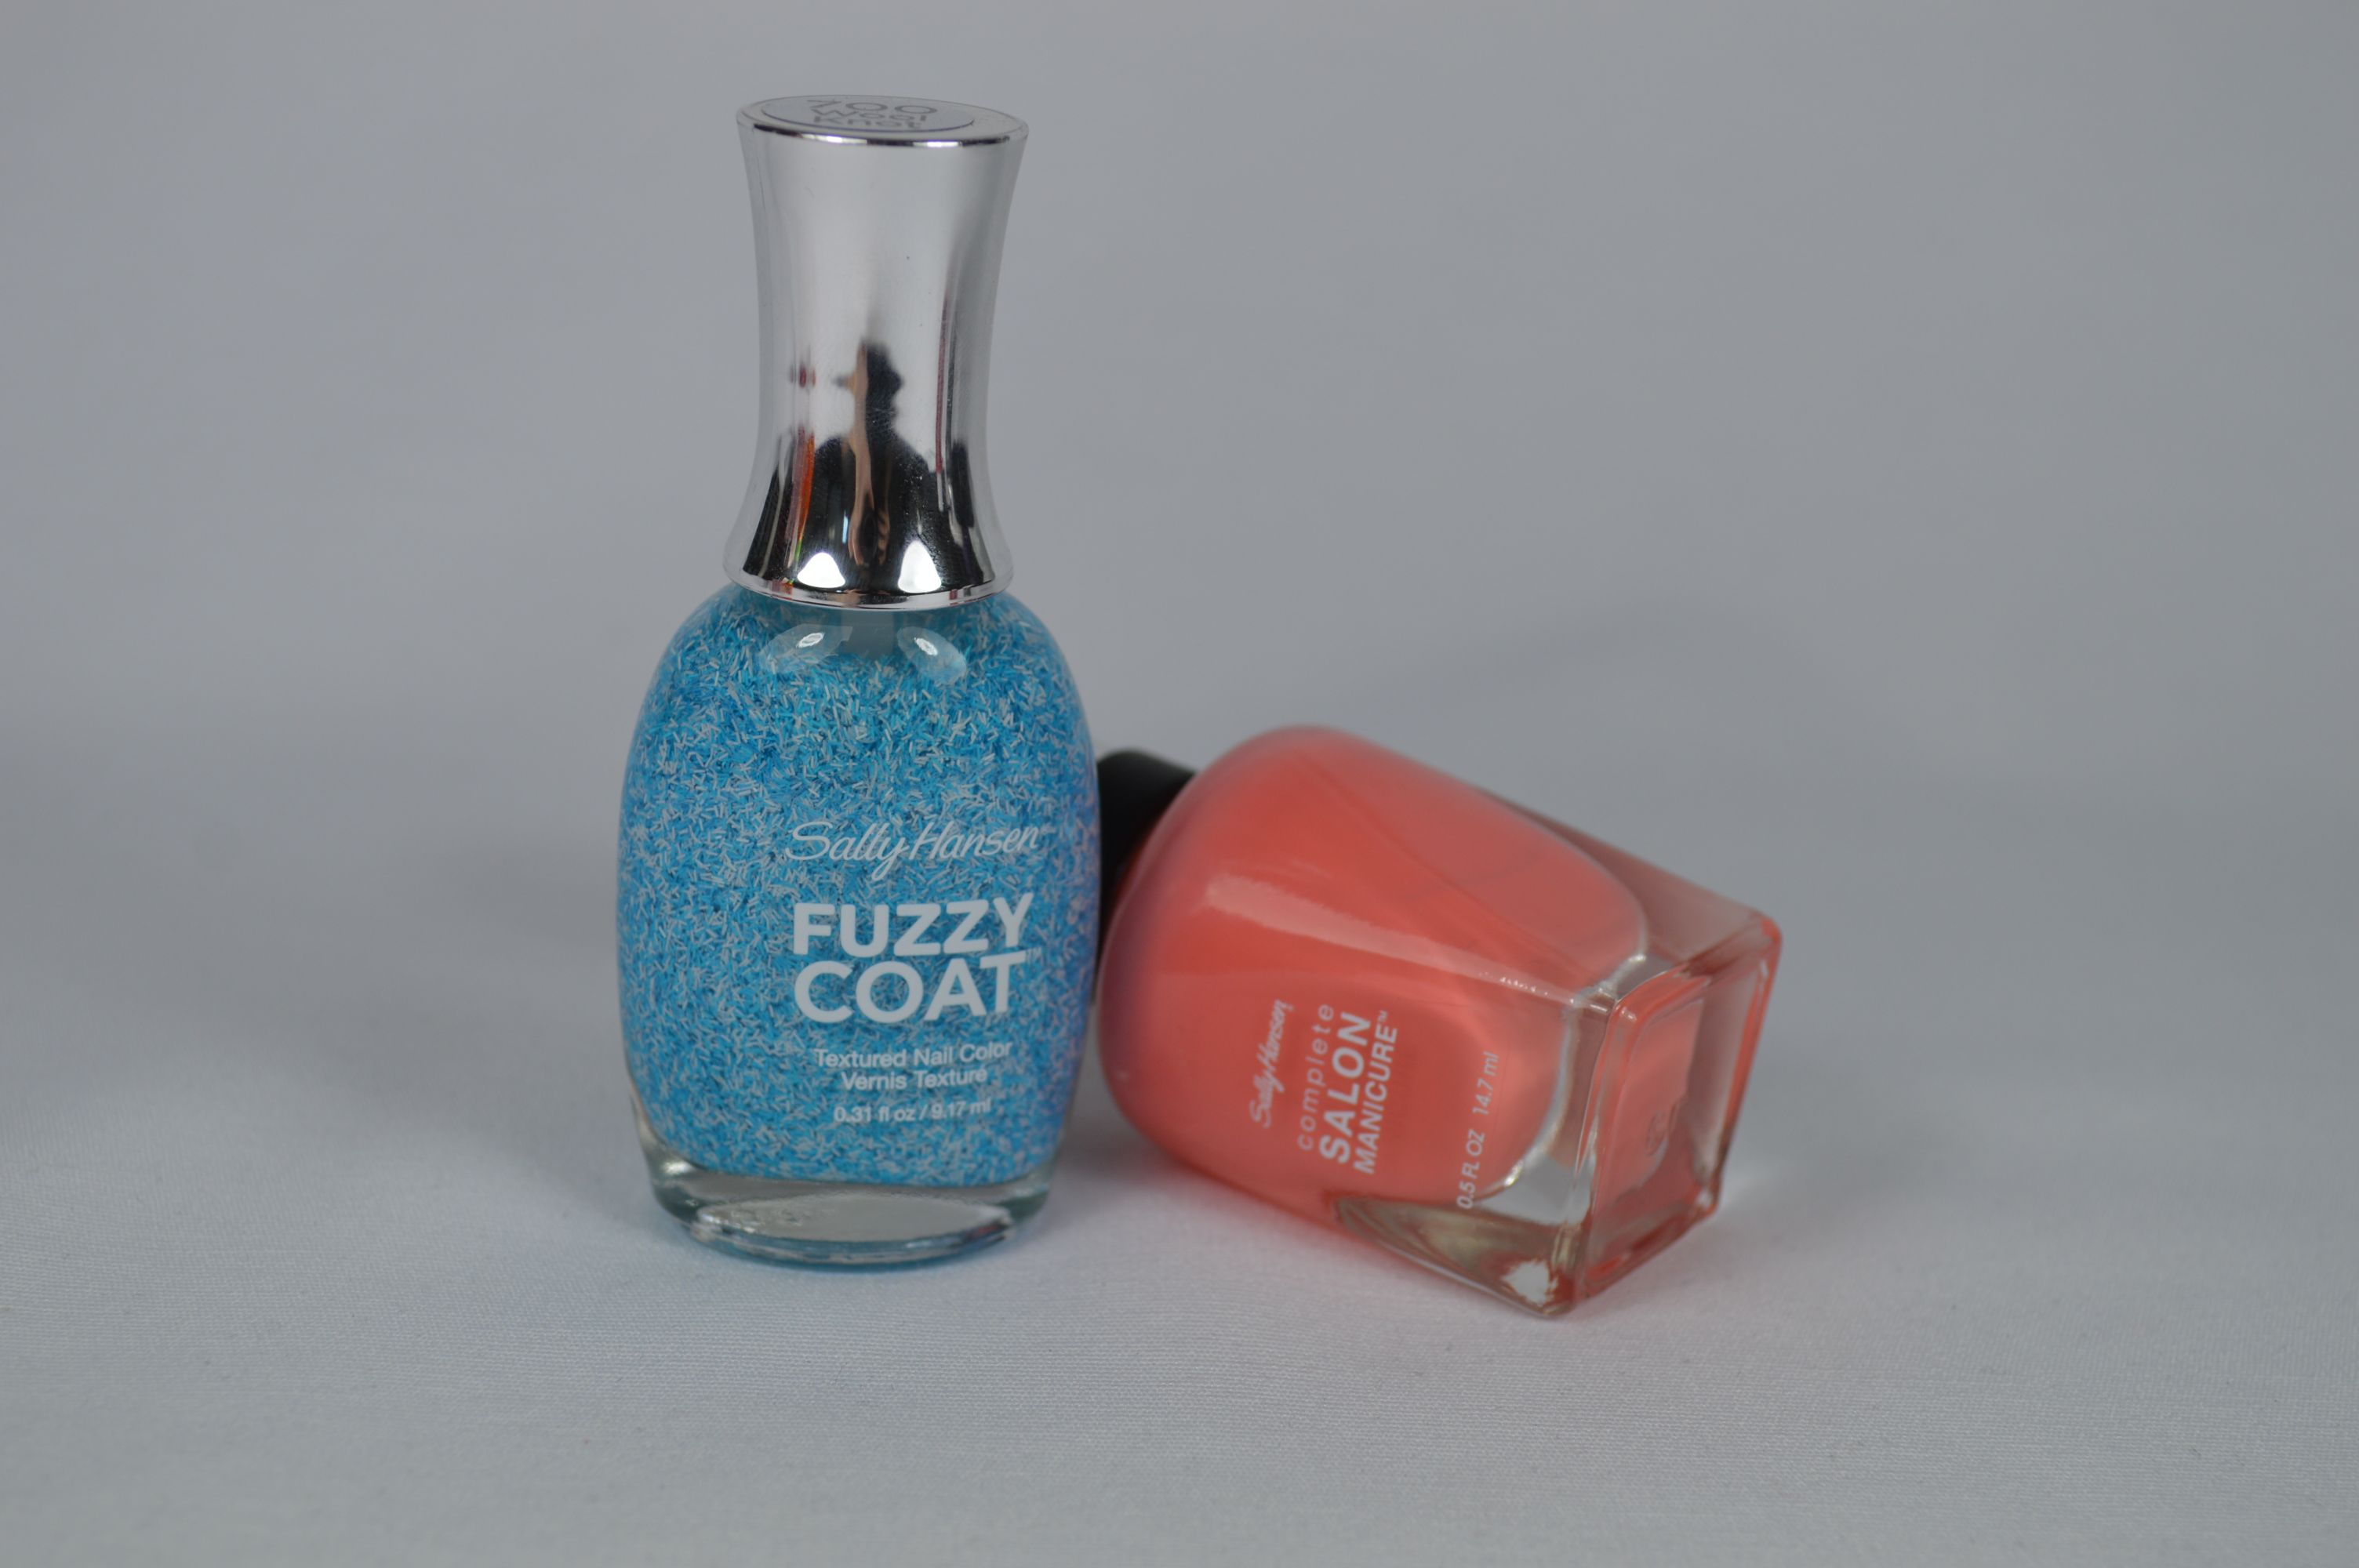 Sally Hansen Peach of Cake Fuzzy Coat Wool Knot Nagellack